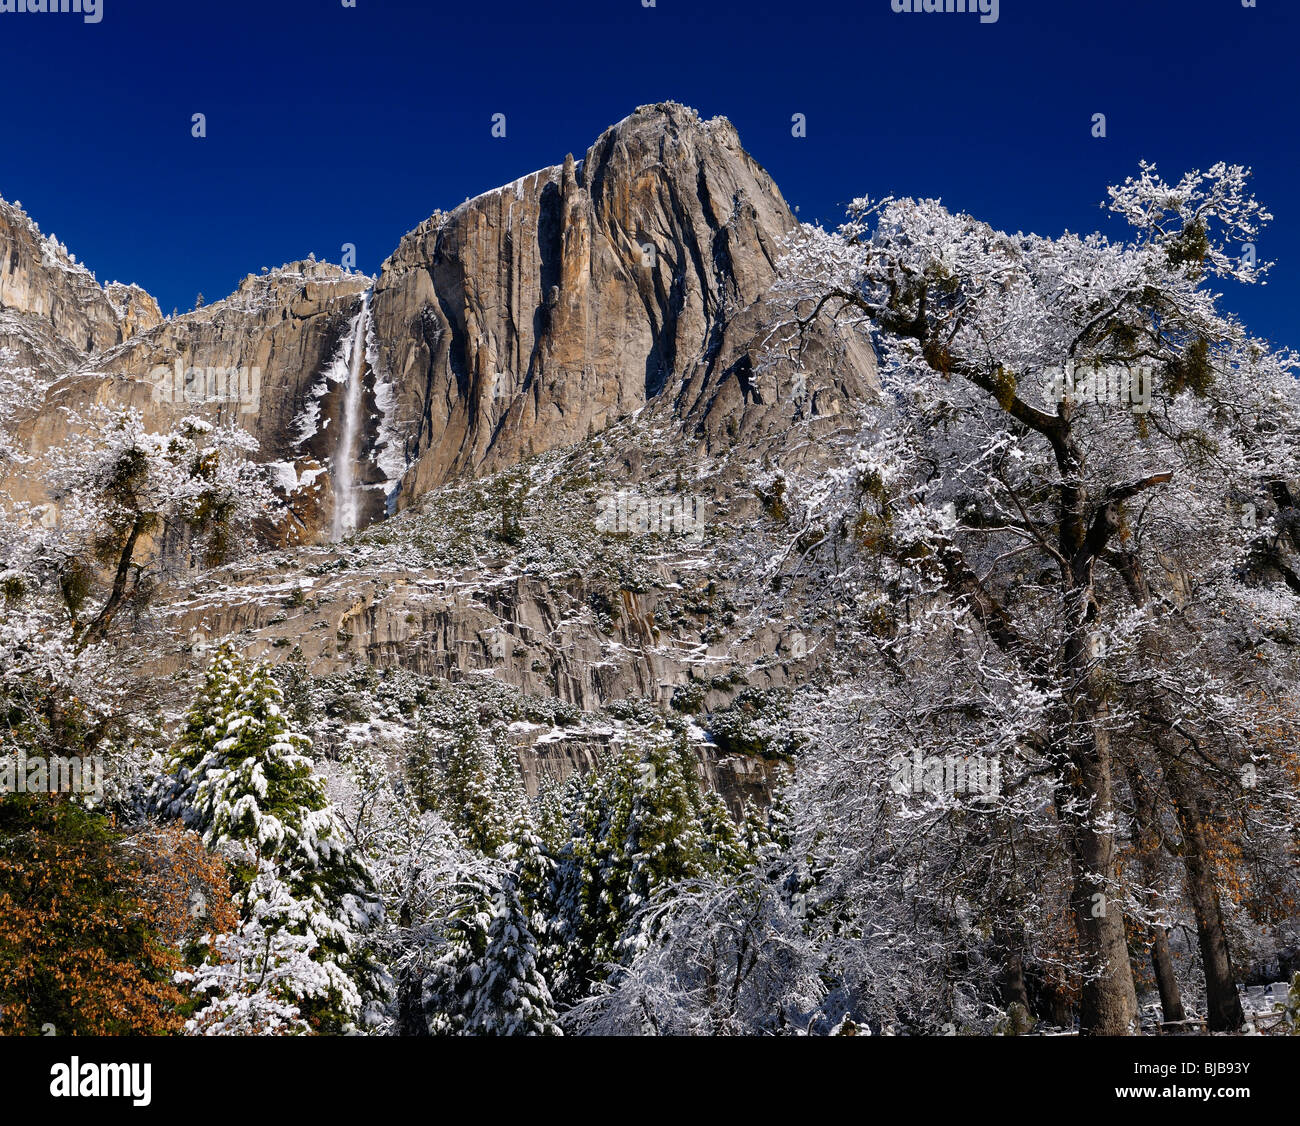 Snow covered trees in the valley of Yosemite National Park with the Upper Yosemite Fall waterfalls in winter USA - Stock Image